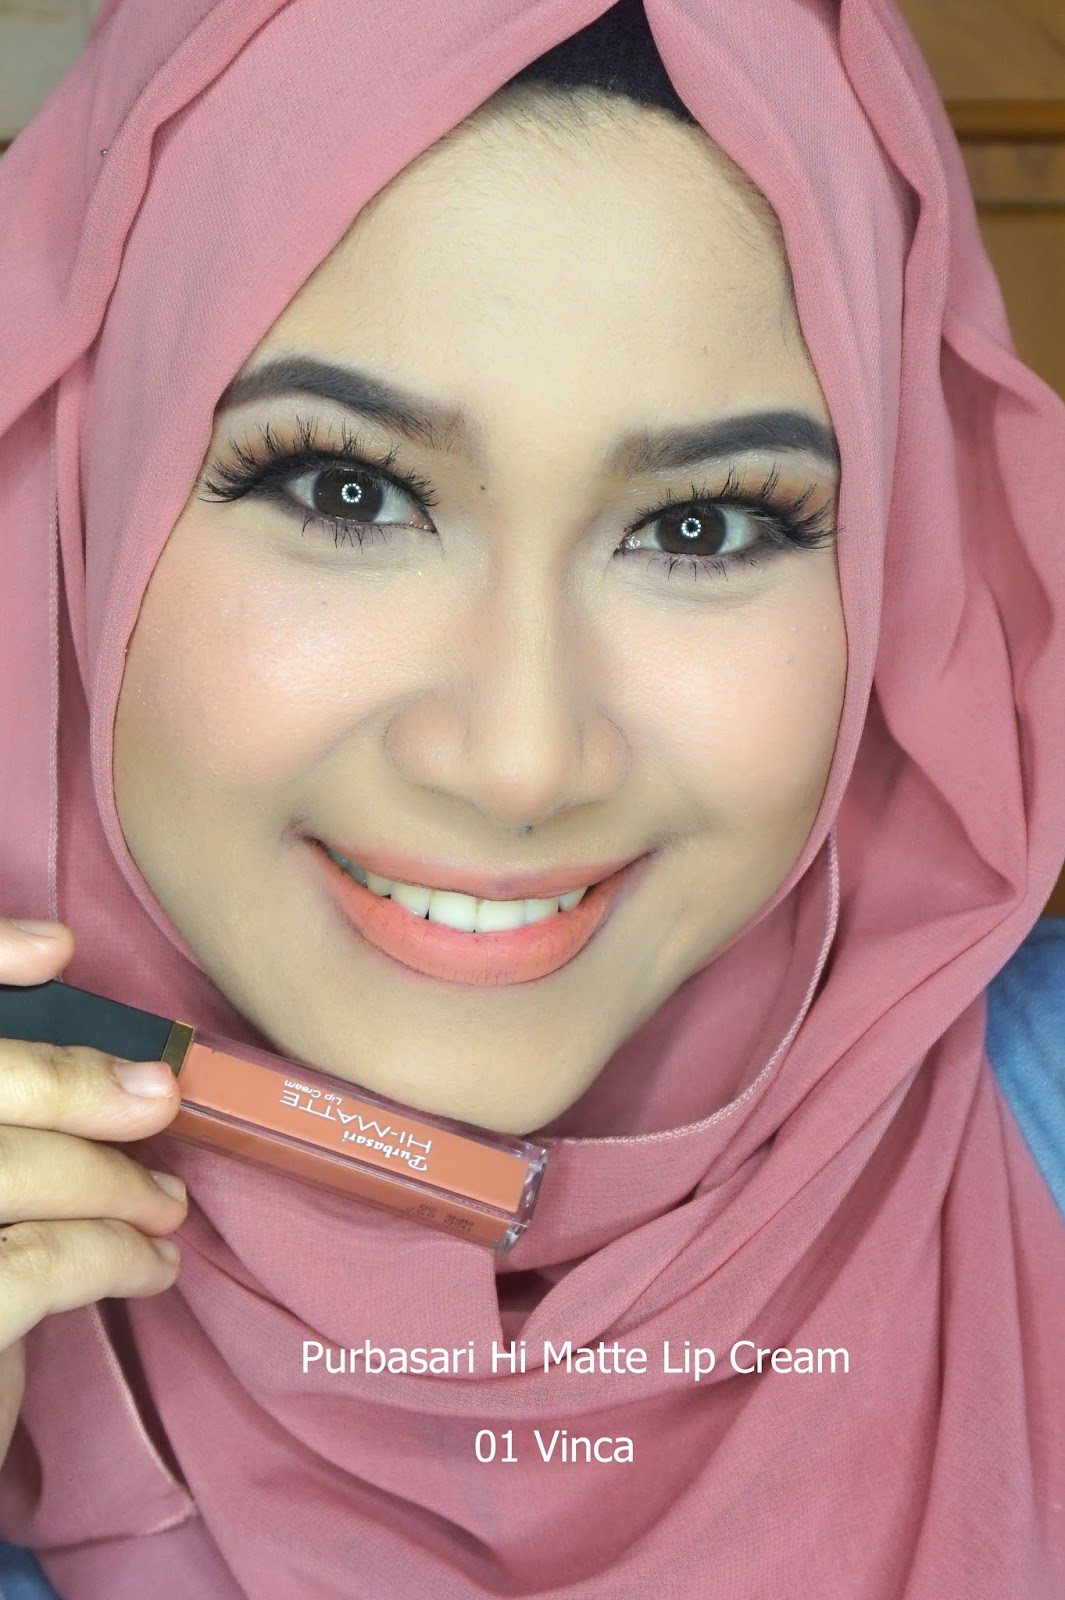 PURBASARI LIP CREAM